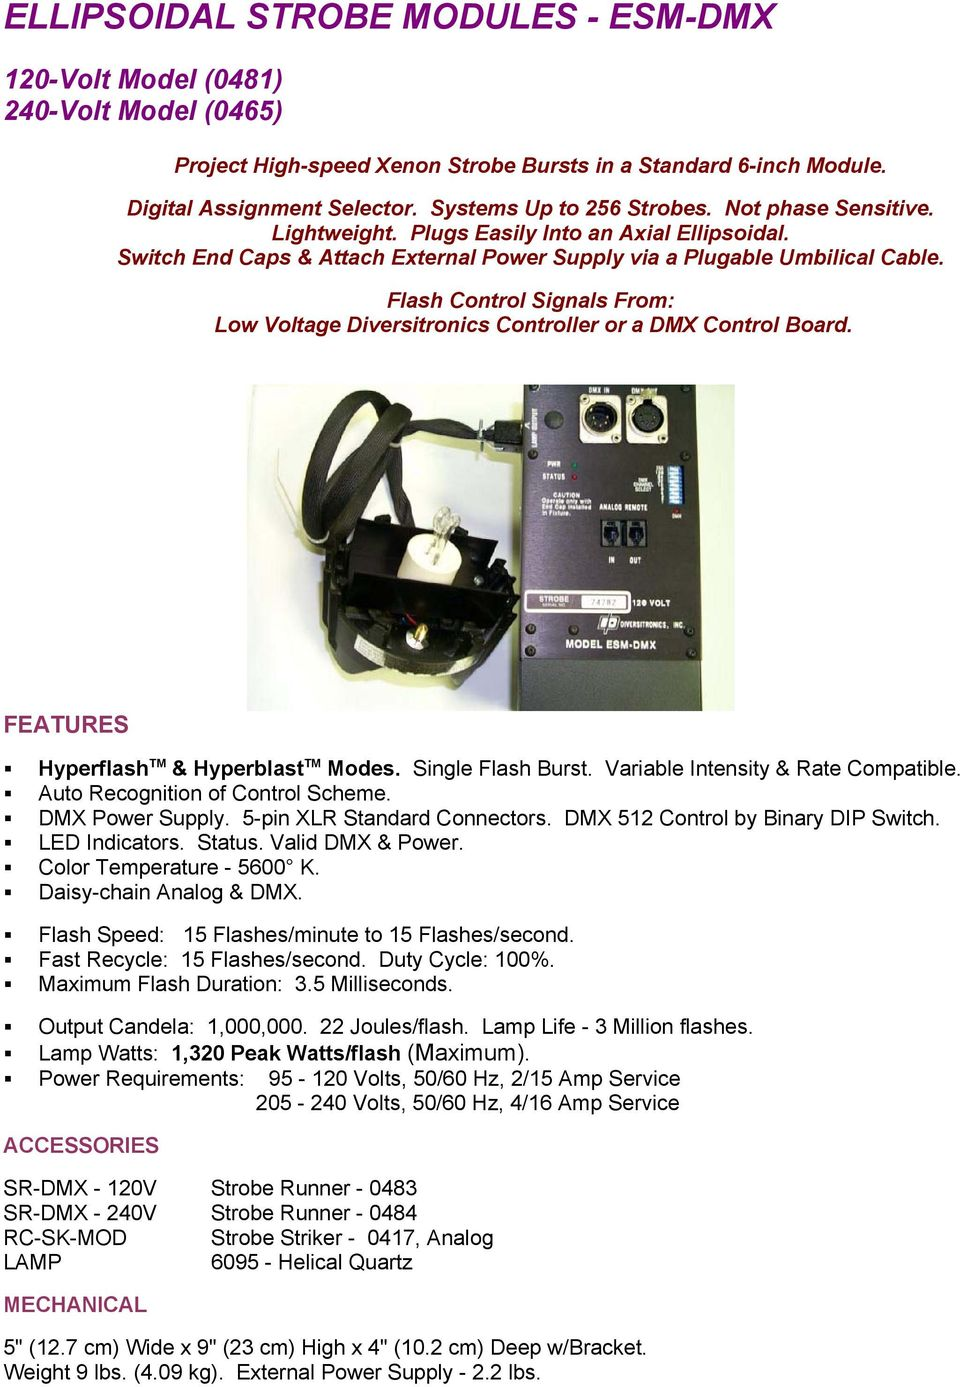 Diversitronics Inc Tm Pdf The Dmx Power Over Cat5 System Is Not To Be Confused With External Supply Lbs Flash Control Signals From Low Voltage Controller Or A Board Hyperflash